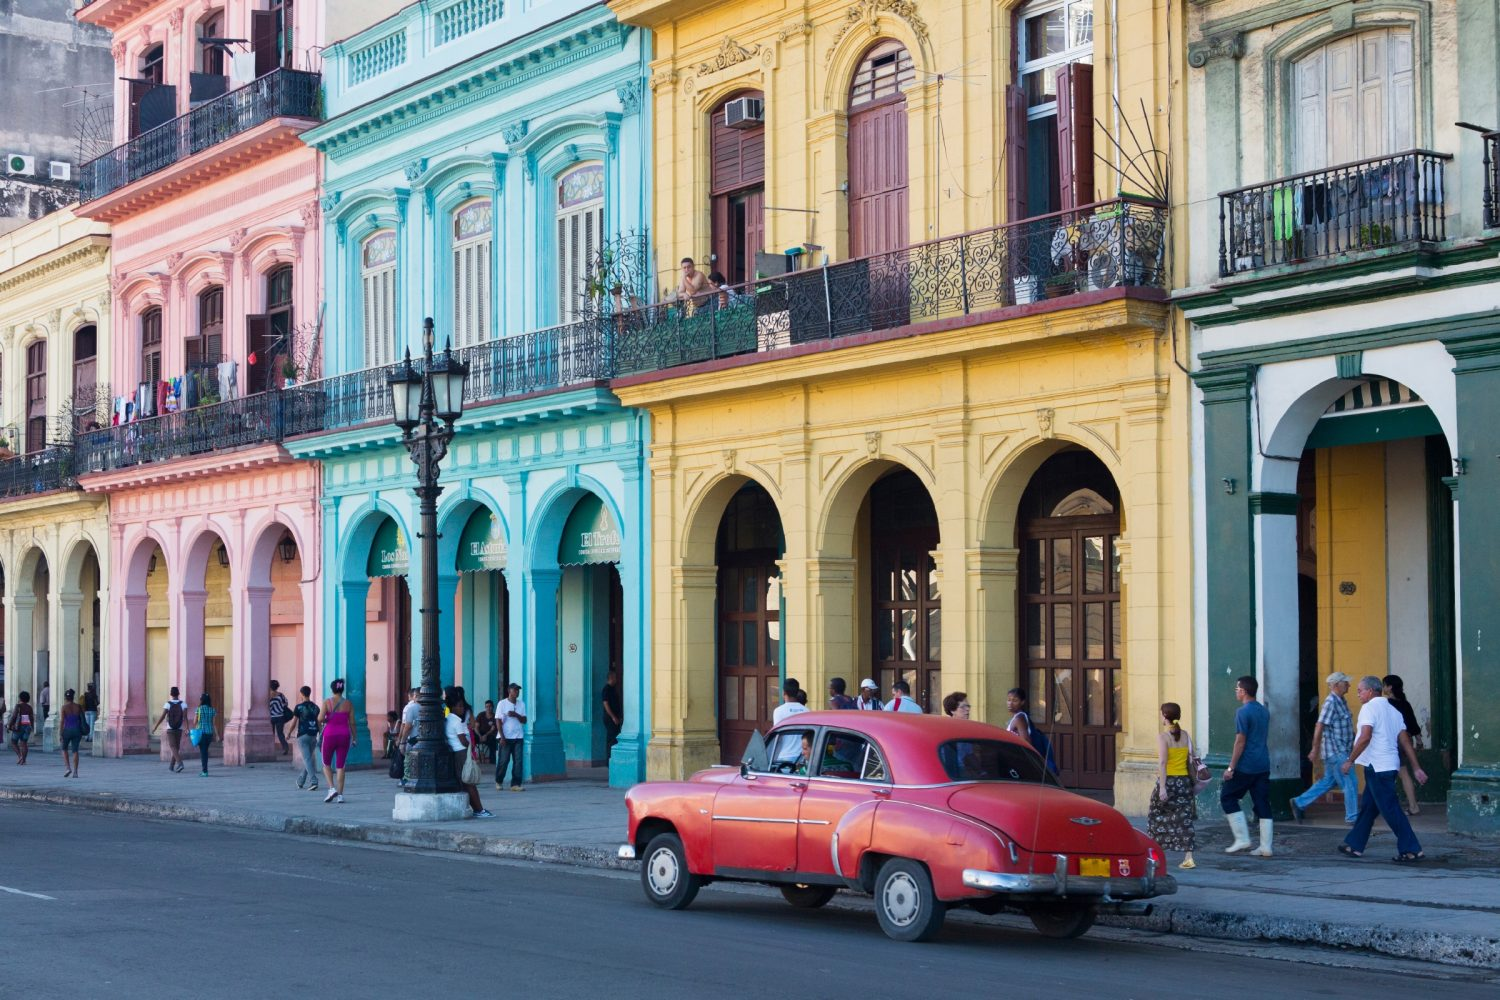 Ryanair customers will soon be able to fly to Havana through Air Europa. Image: Bastian Linder